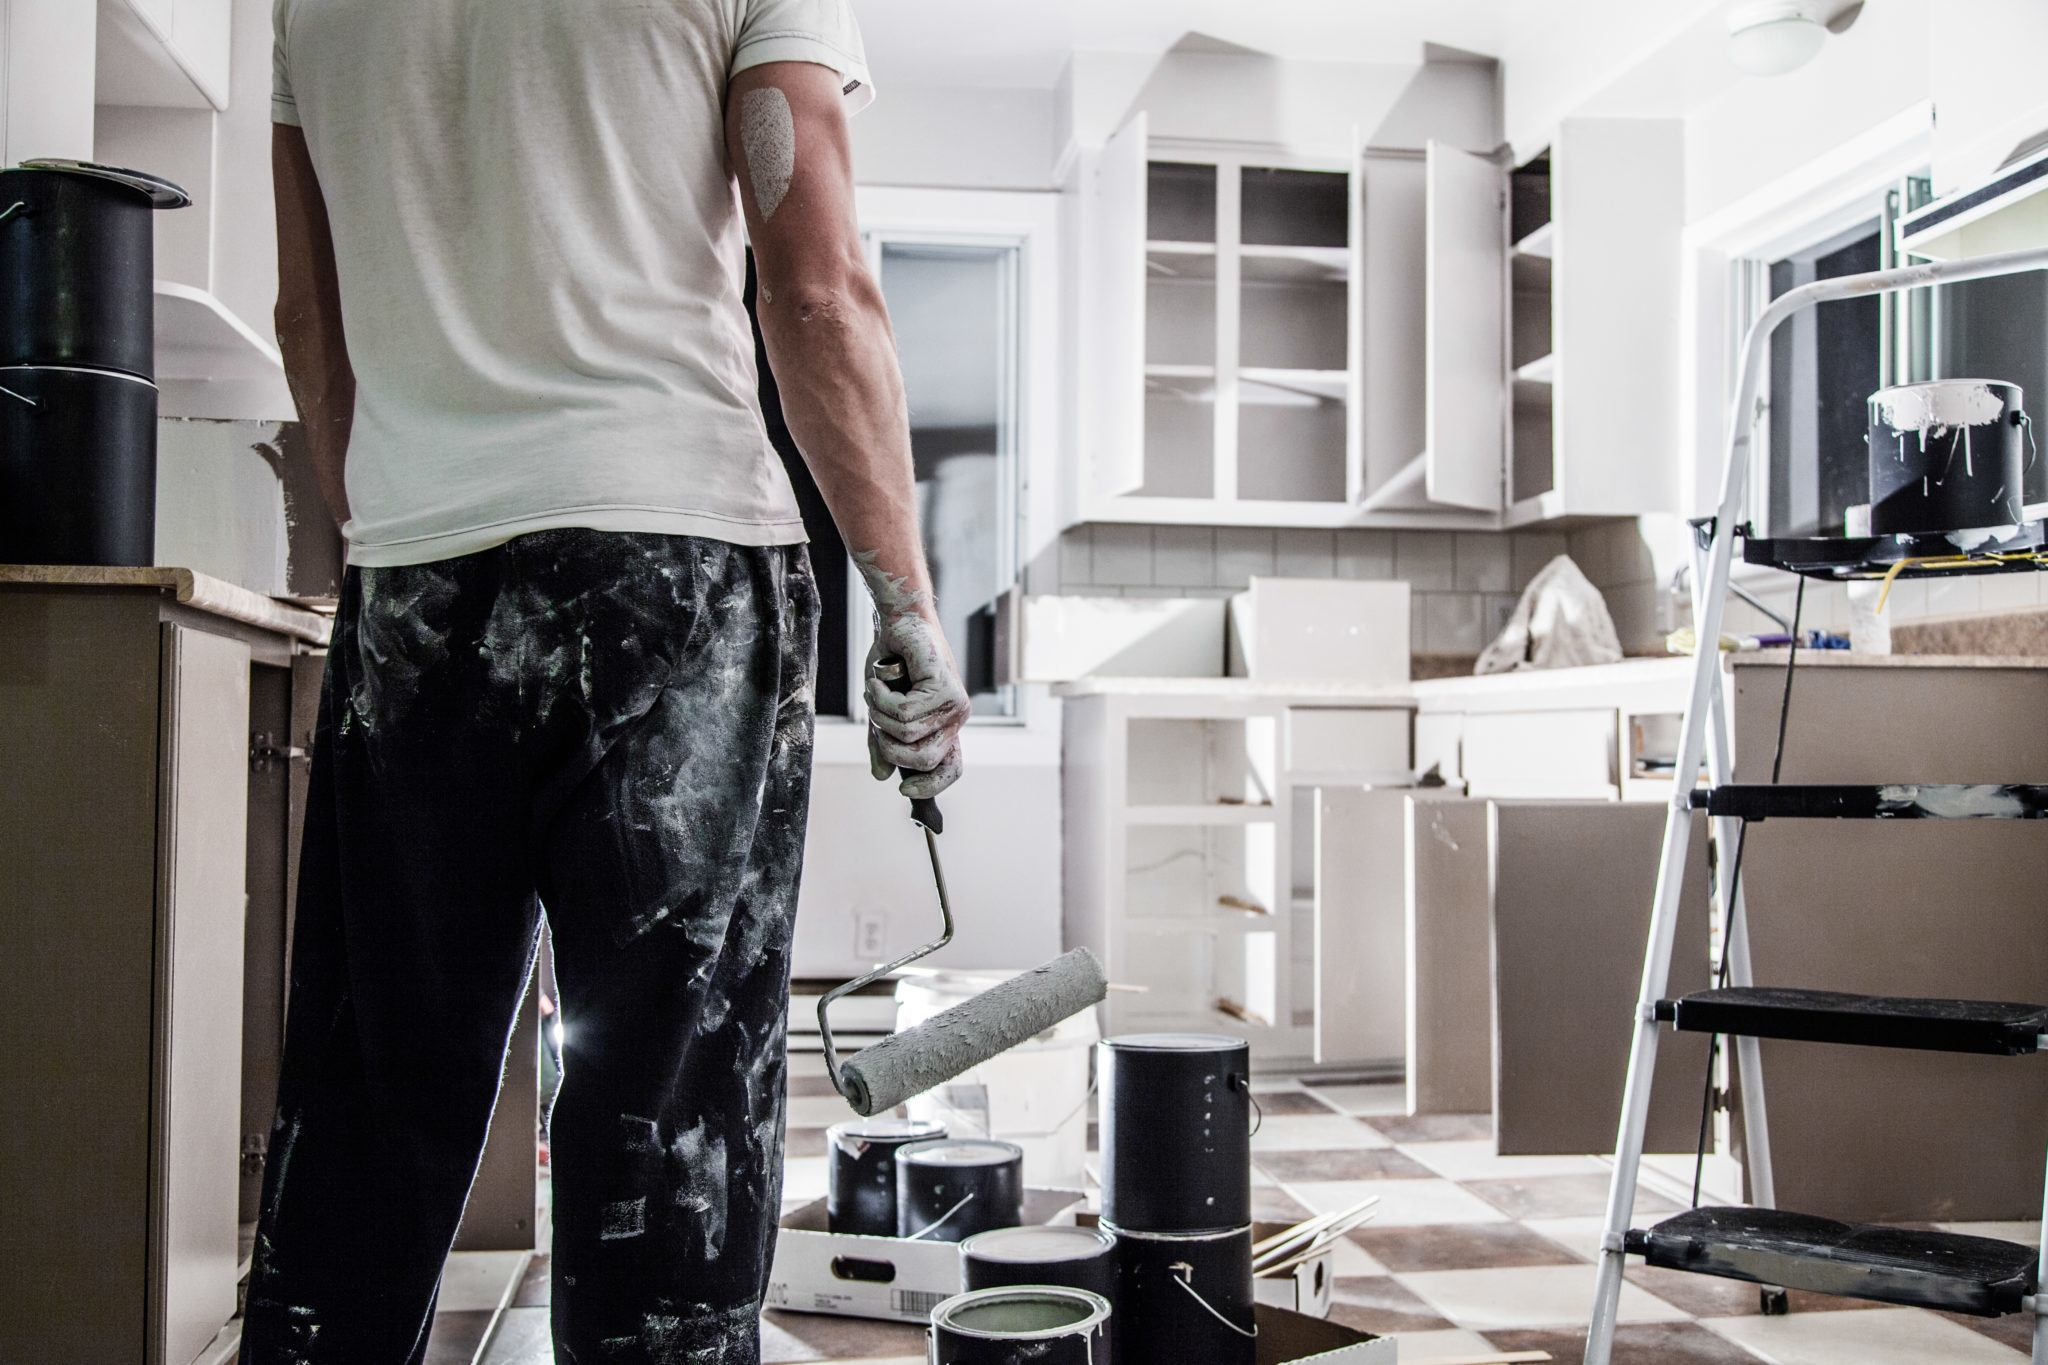 Painting kitchen cabinets is a great way to save money on your kitchen remodeling project.